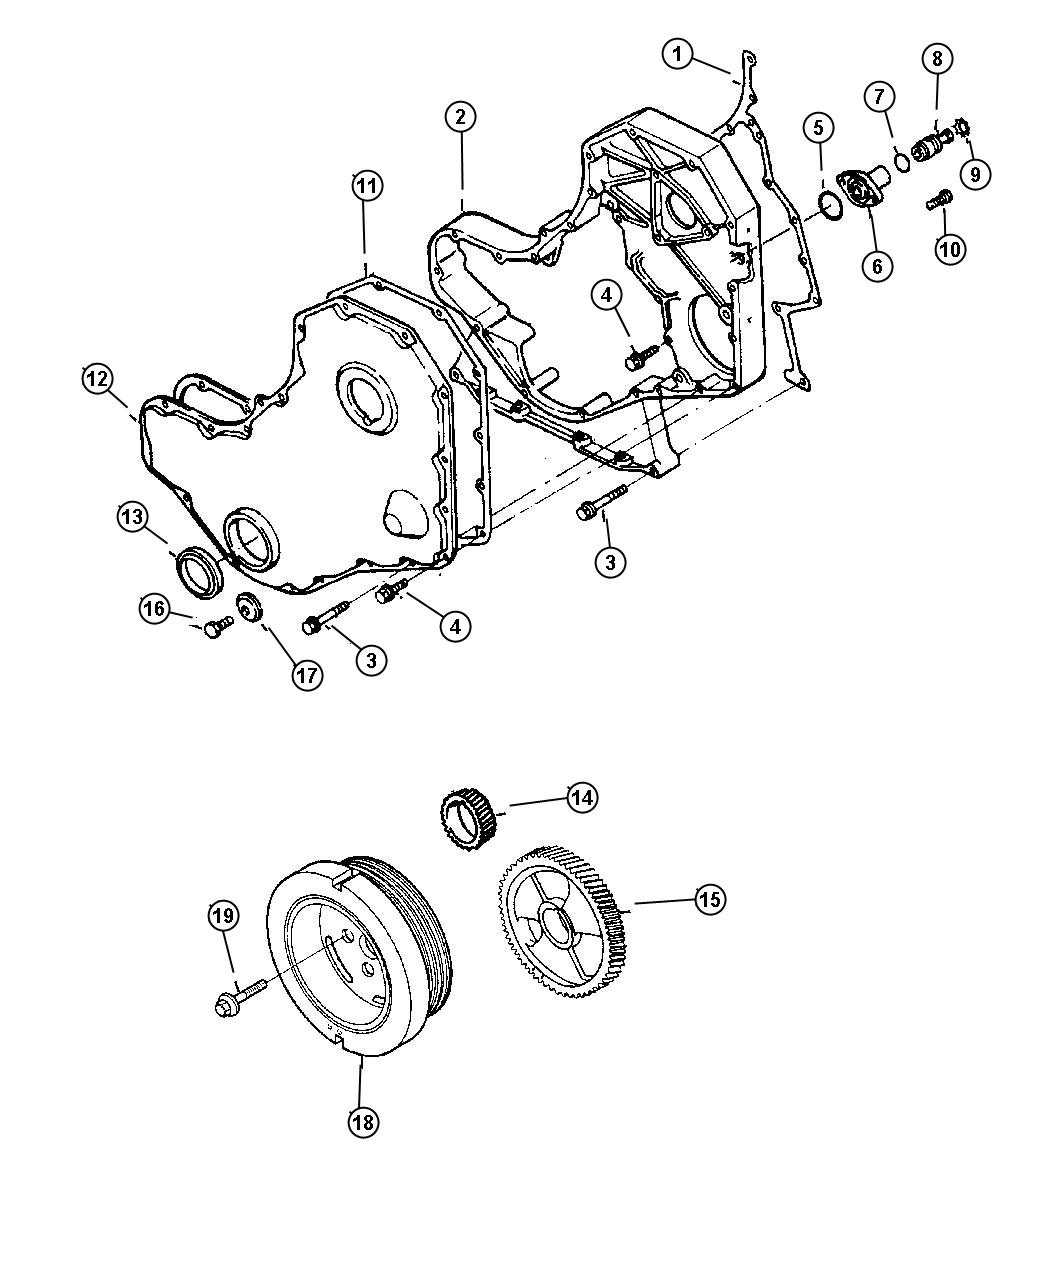 [DIAGRAM] 2012 Dodge Ram 2500 6 7 Belt Diagram FULL